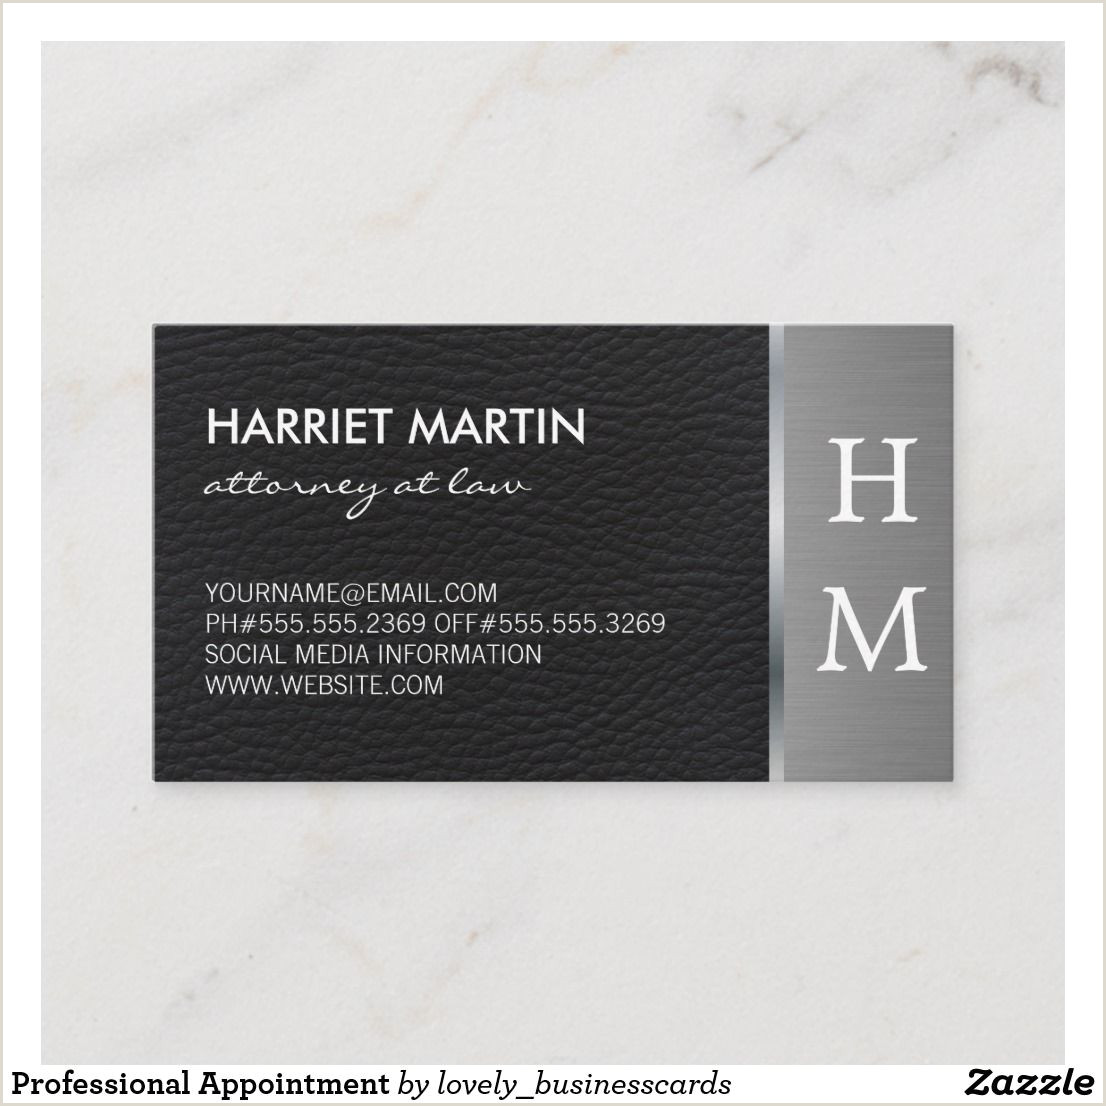 How To Write A Business Card Professional Appointment Zazzle